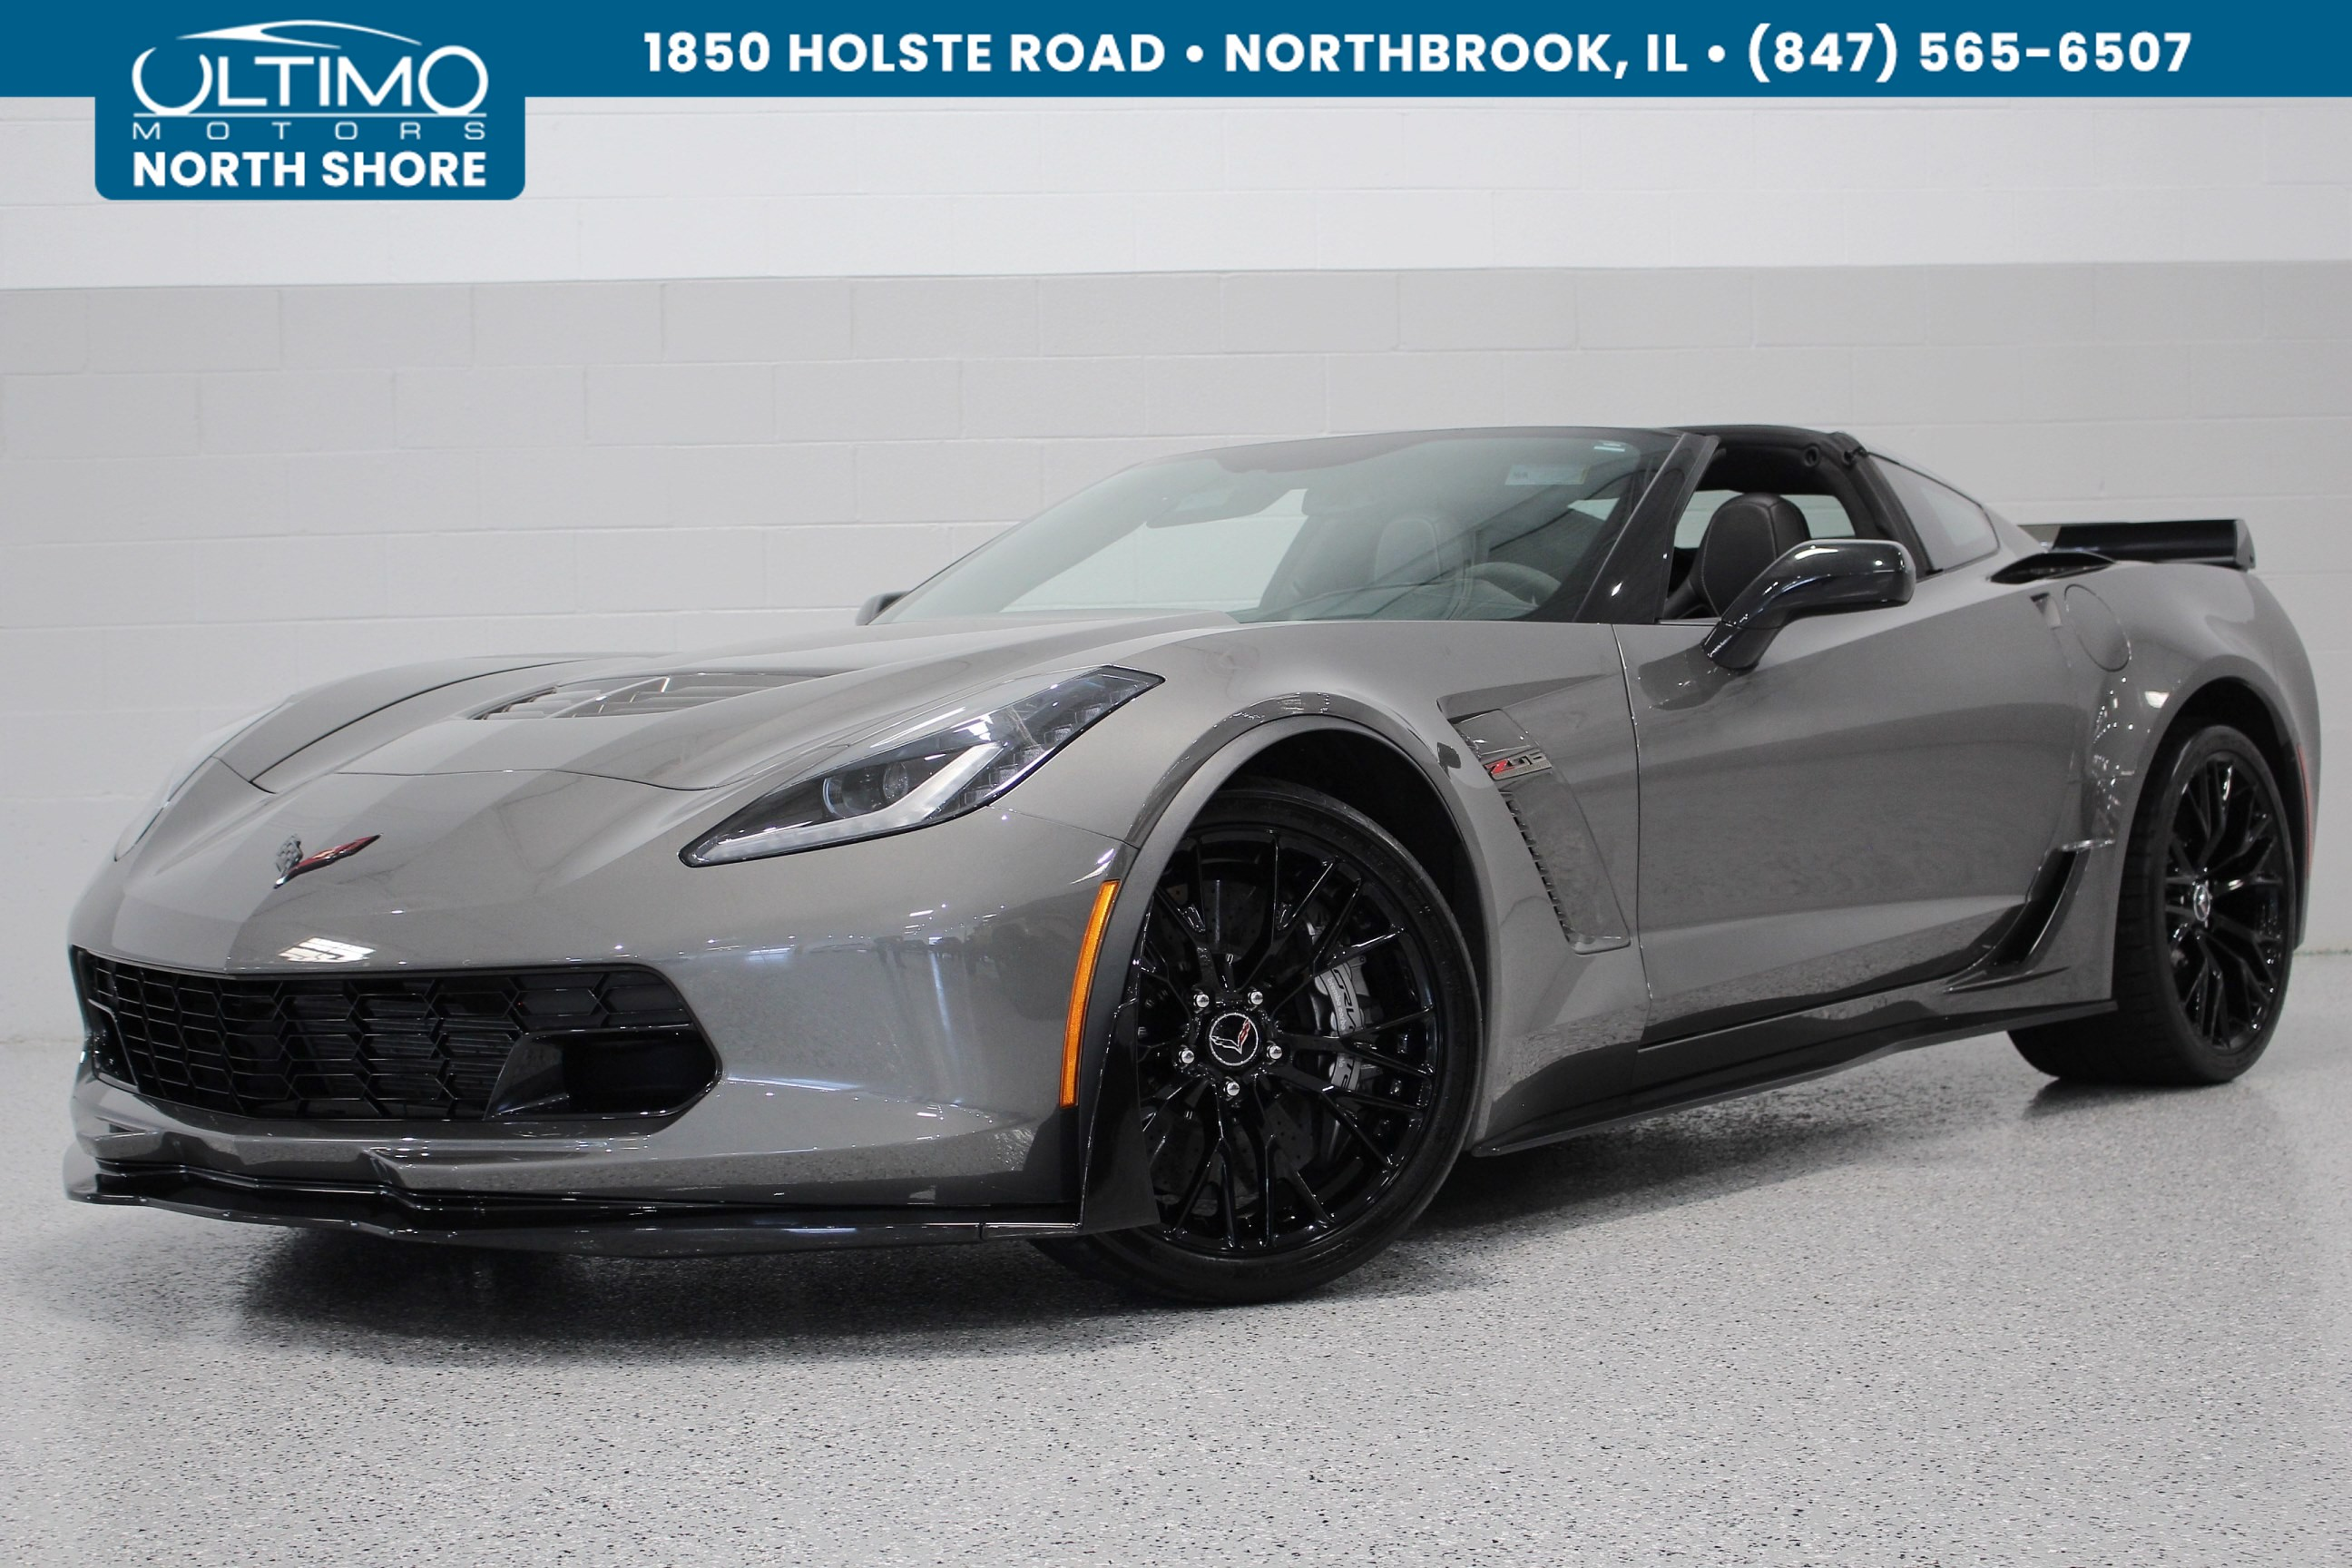 pre owned 2015 chevrolet corvette z06 3lz z07 w ccb carbon fiber